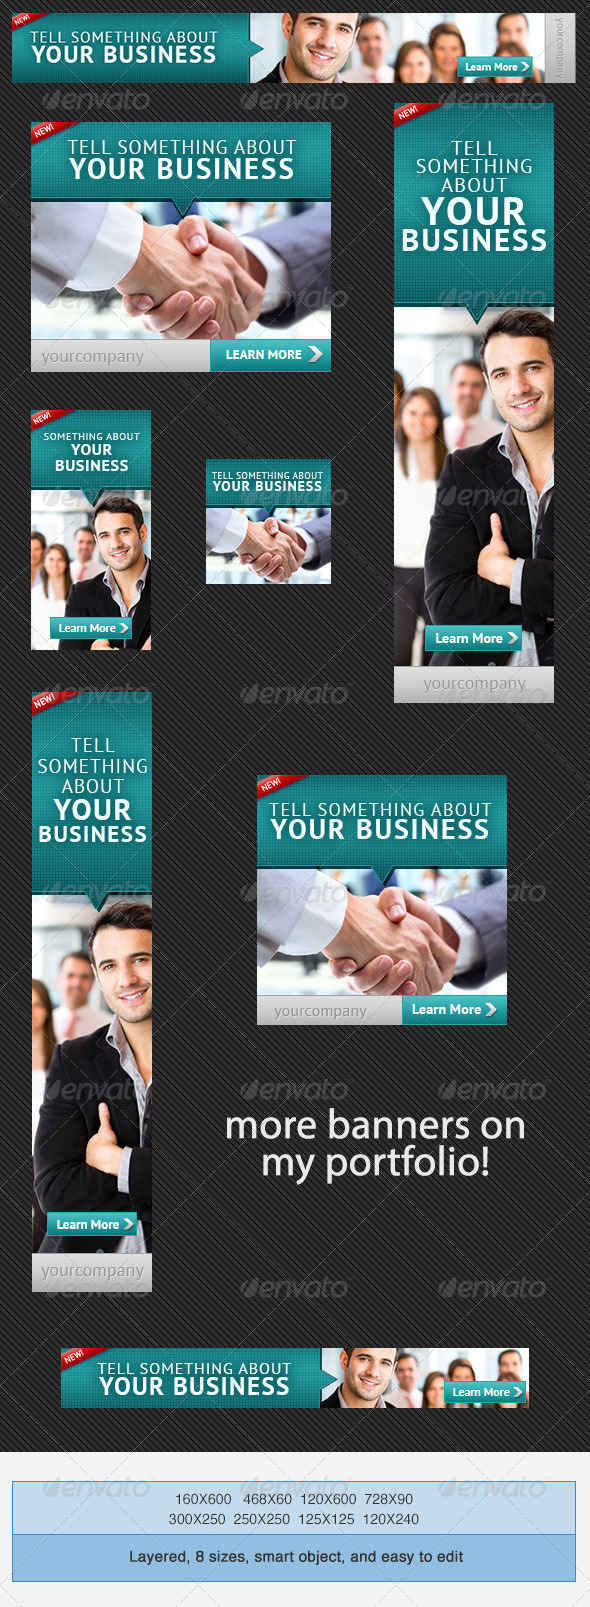 Corporate PSD Banner Ad Template 3 - Banners & Ads Web Elements